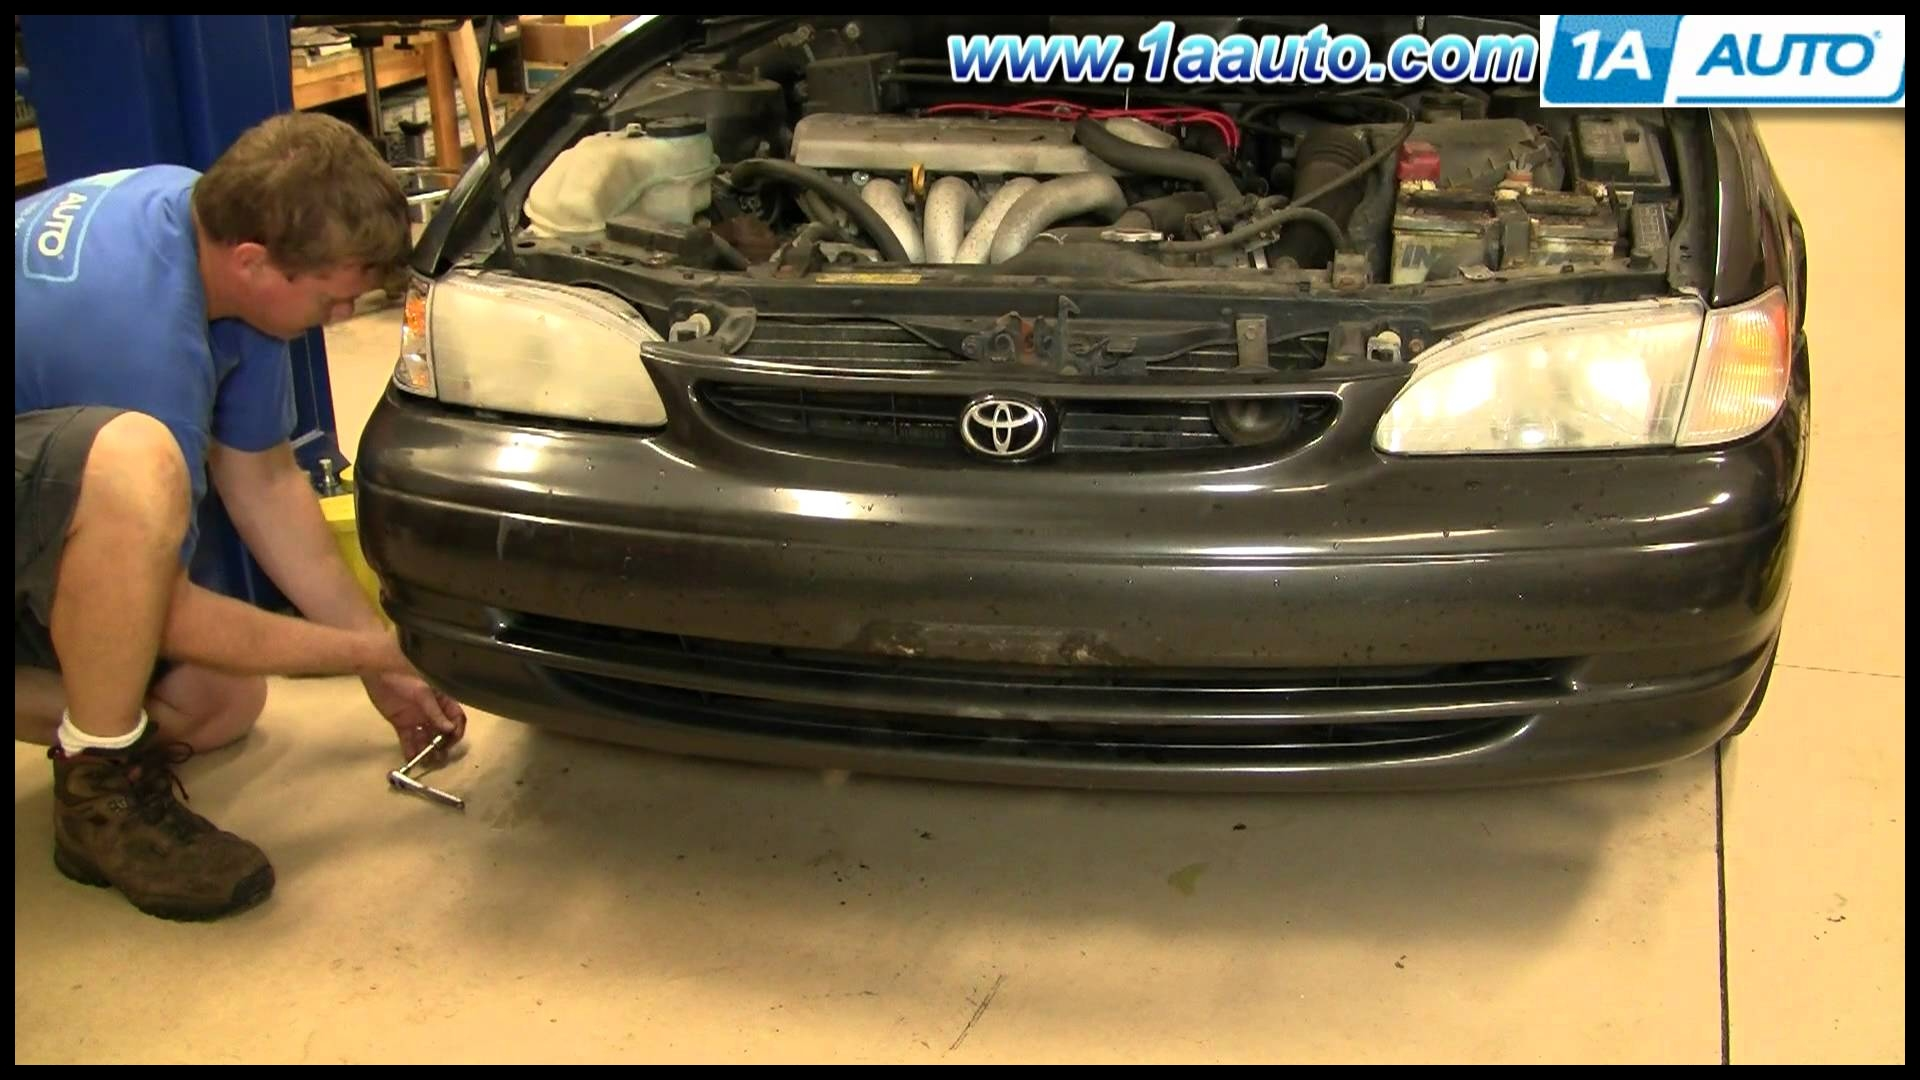 How To Install Replace Headlight and Bulb Toyota Corolla 98 02 1AAuto – Social Media Video Network Trends